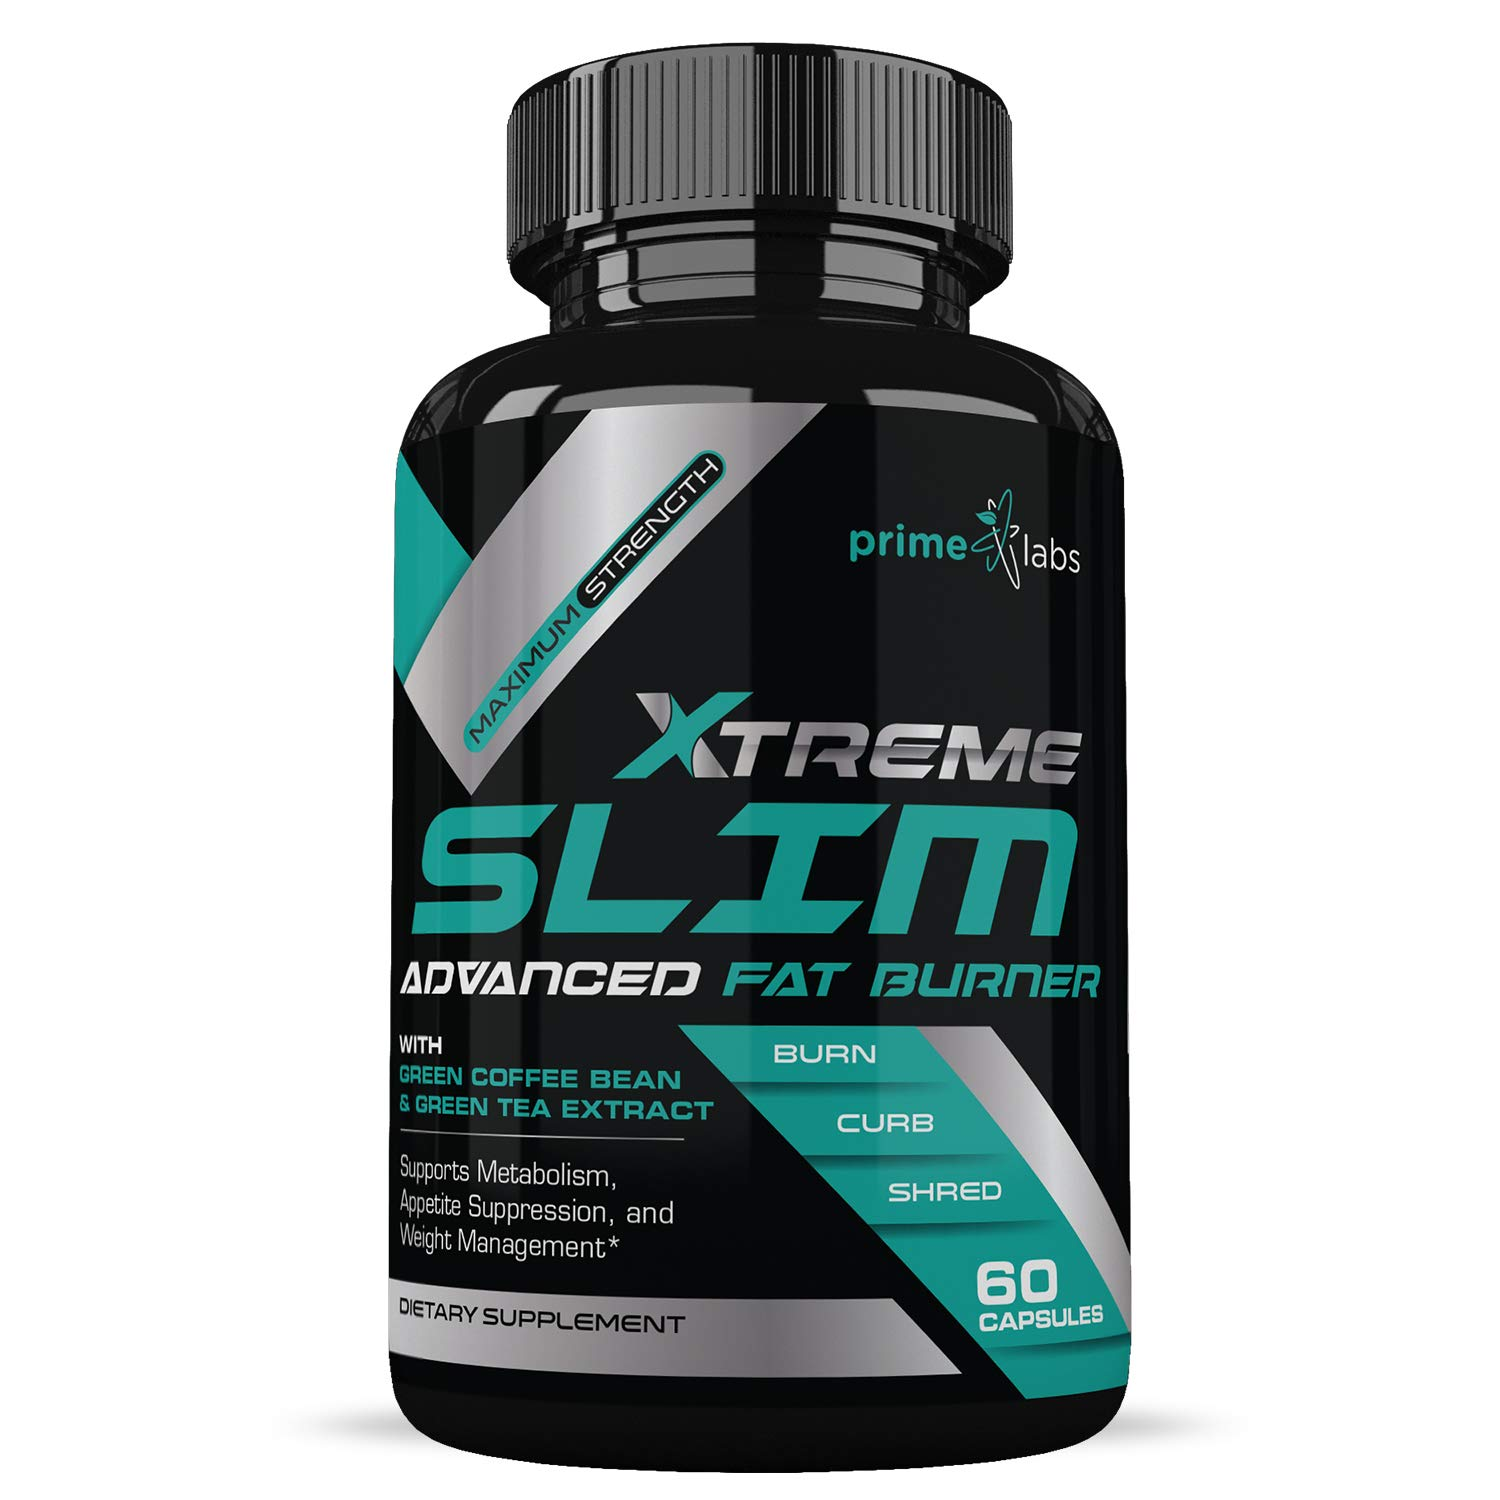 Advanced Fat Burner for Women and Men - Diet Weight Loss Pills Supplements - Natural Ingredients ft. Green Coffee Bean & Raspberry Ketone - Boost Energy and Carb Blocker - Prime Labs